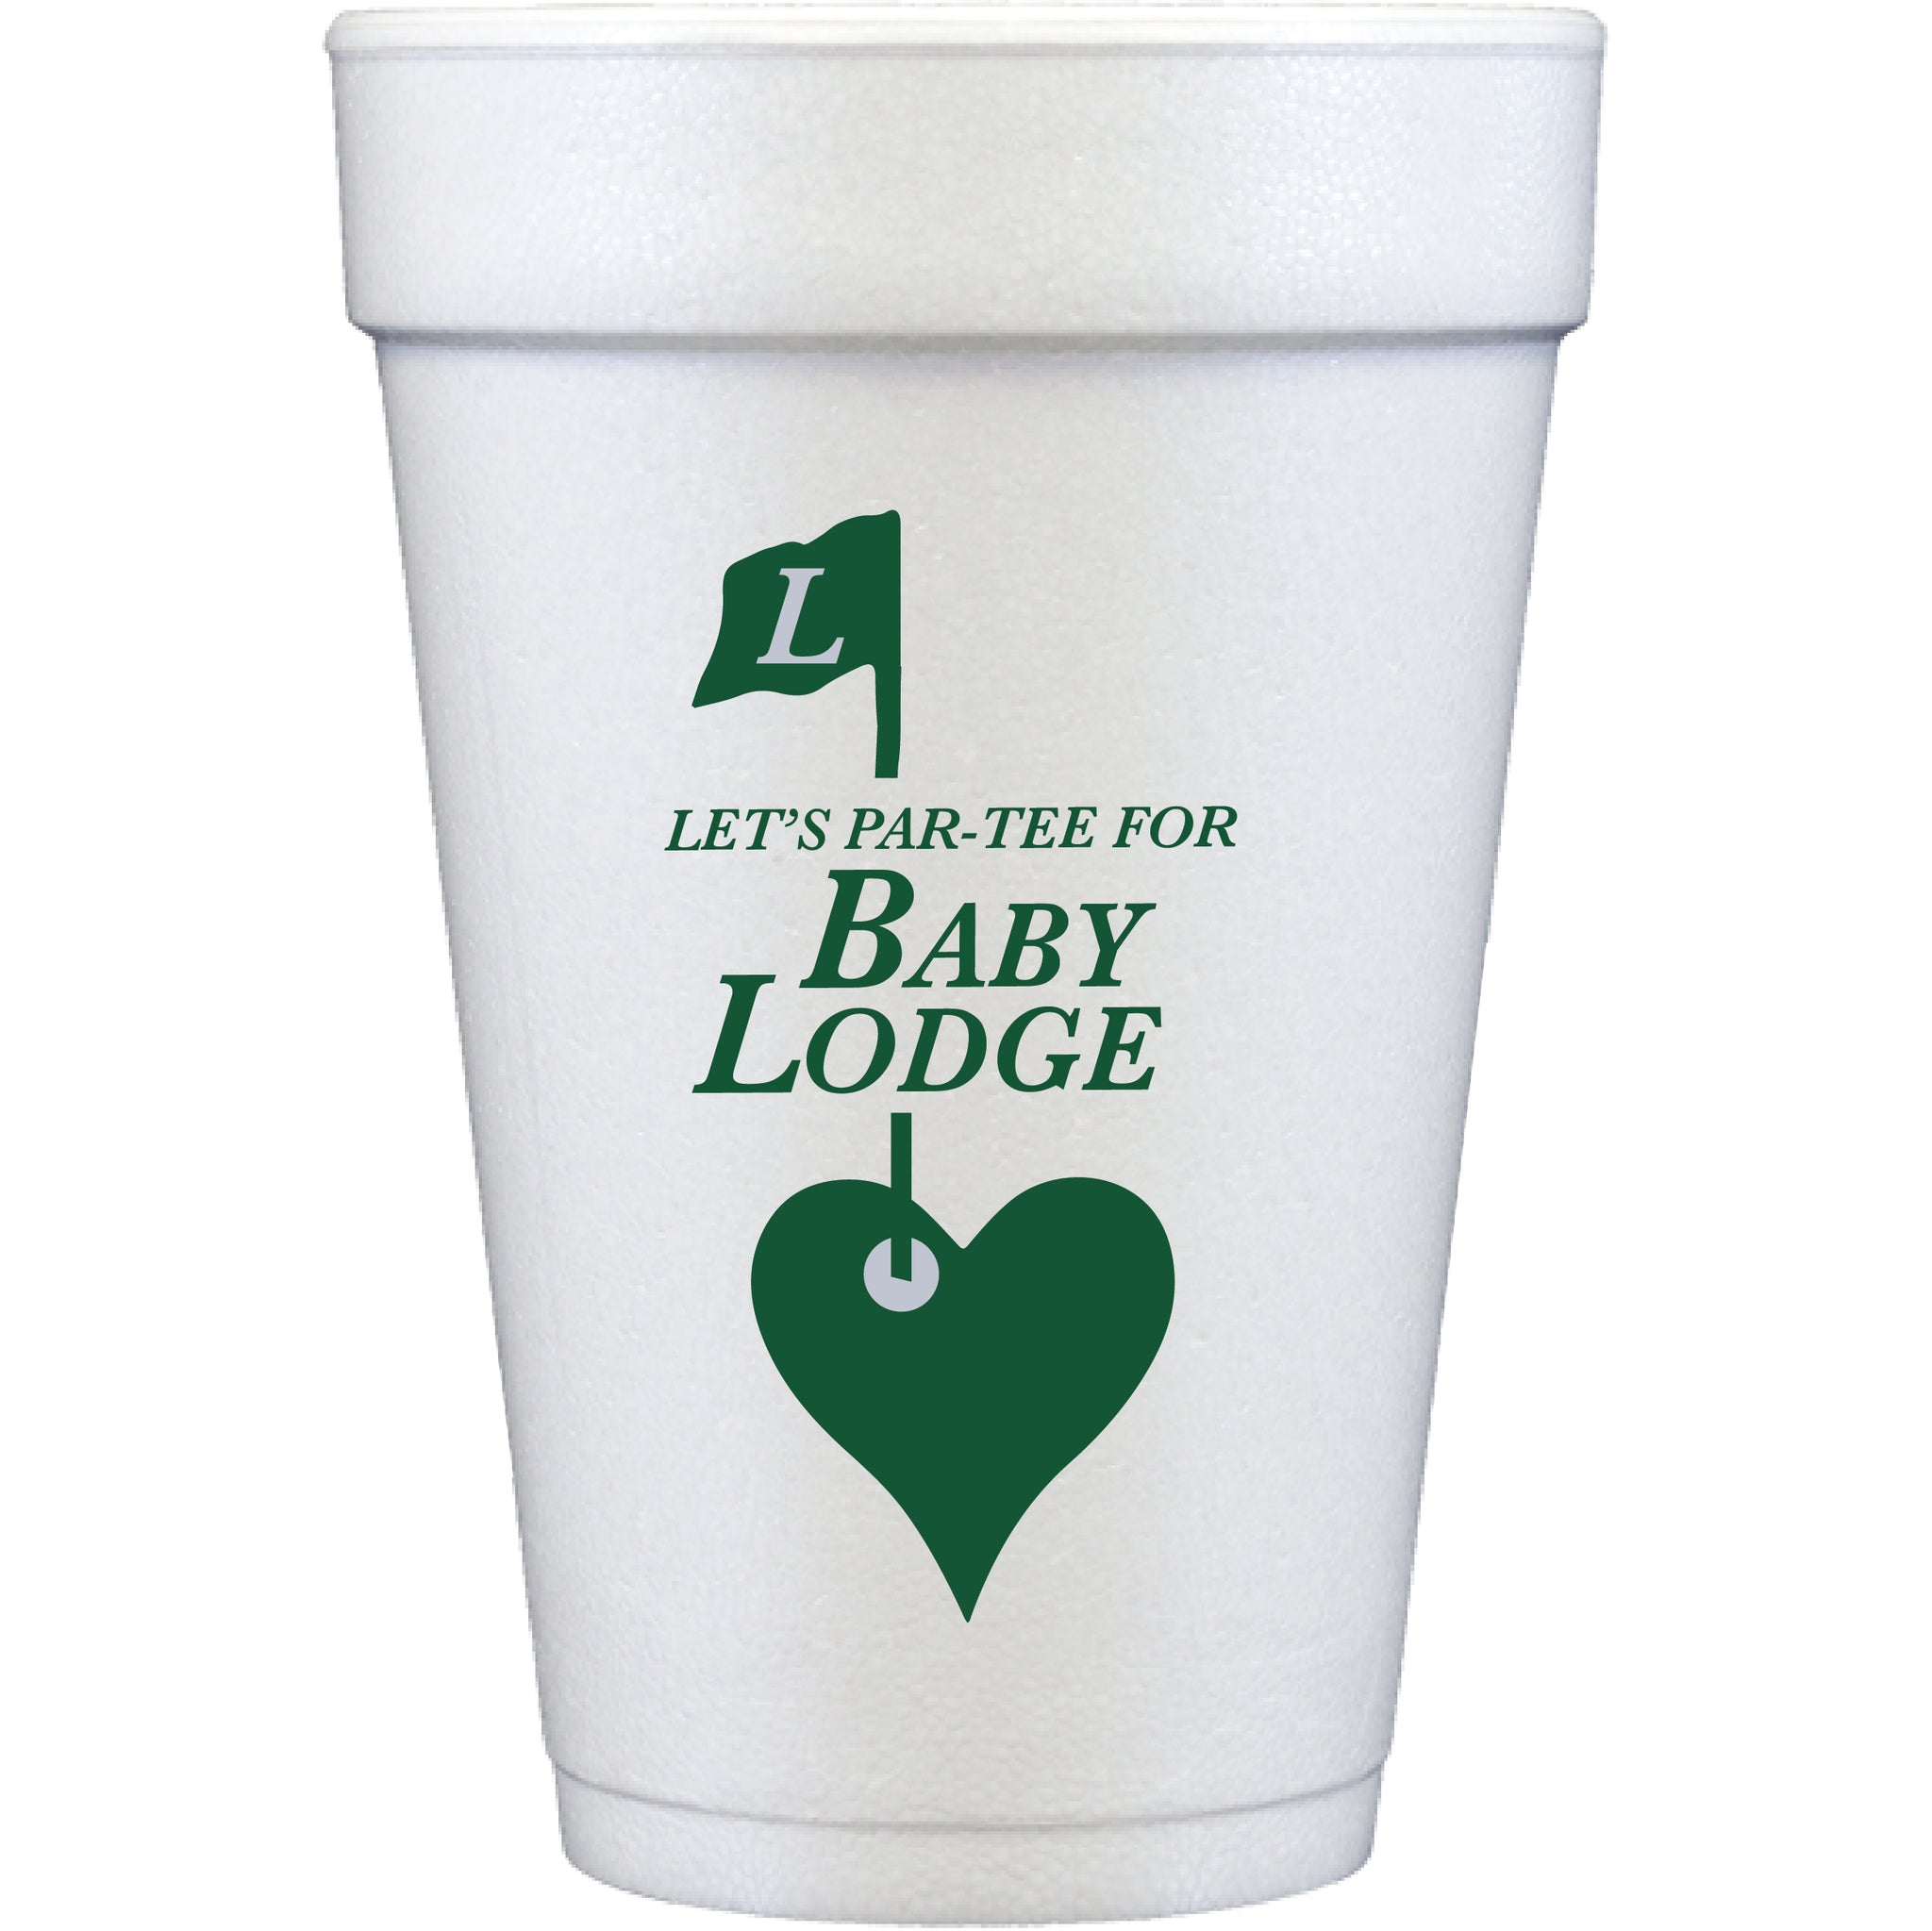 styrofoam cups | baby partee